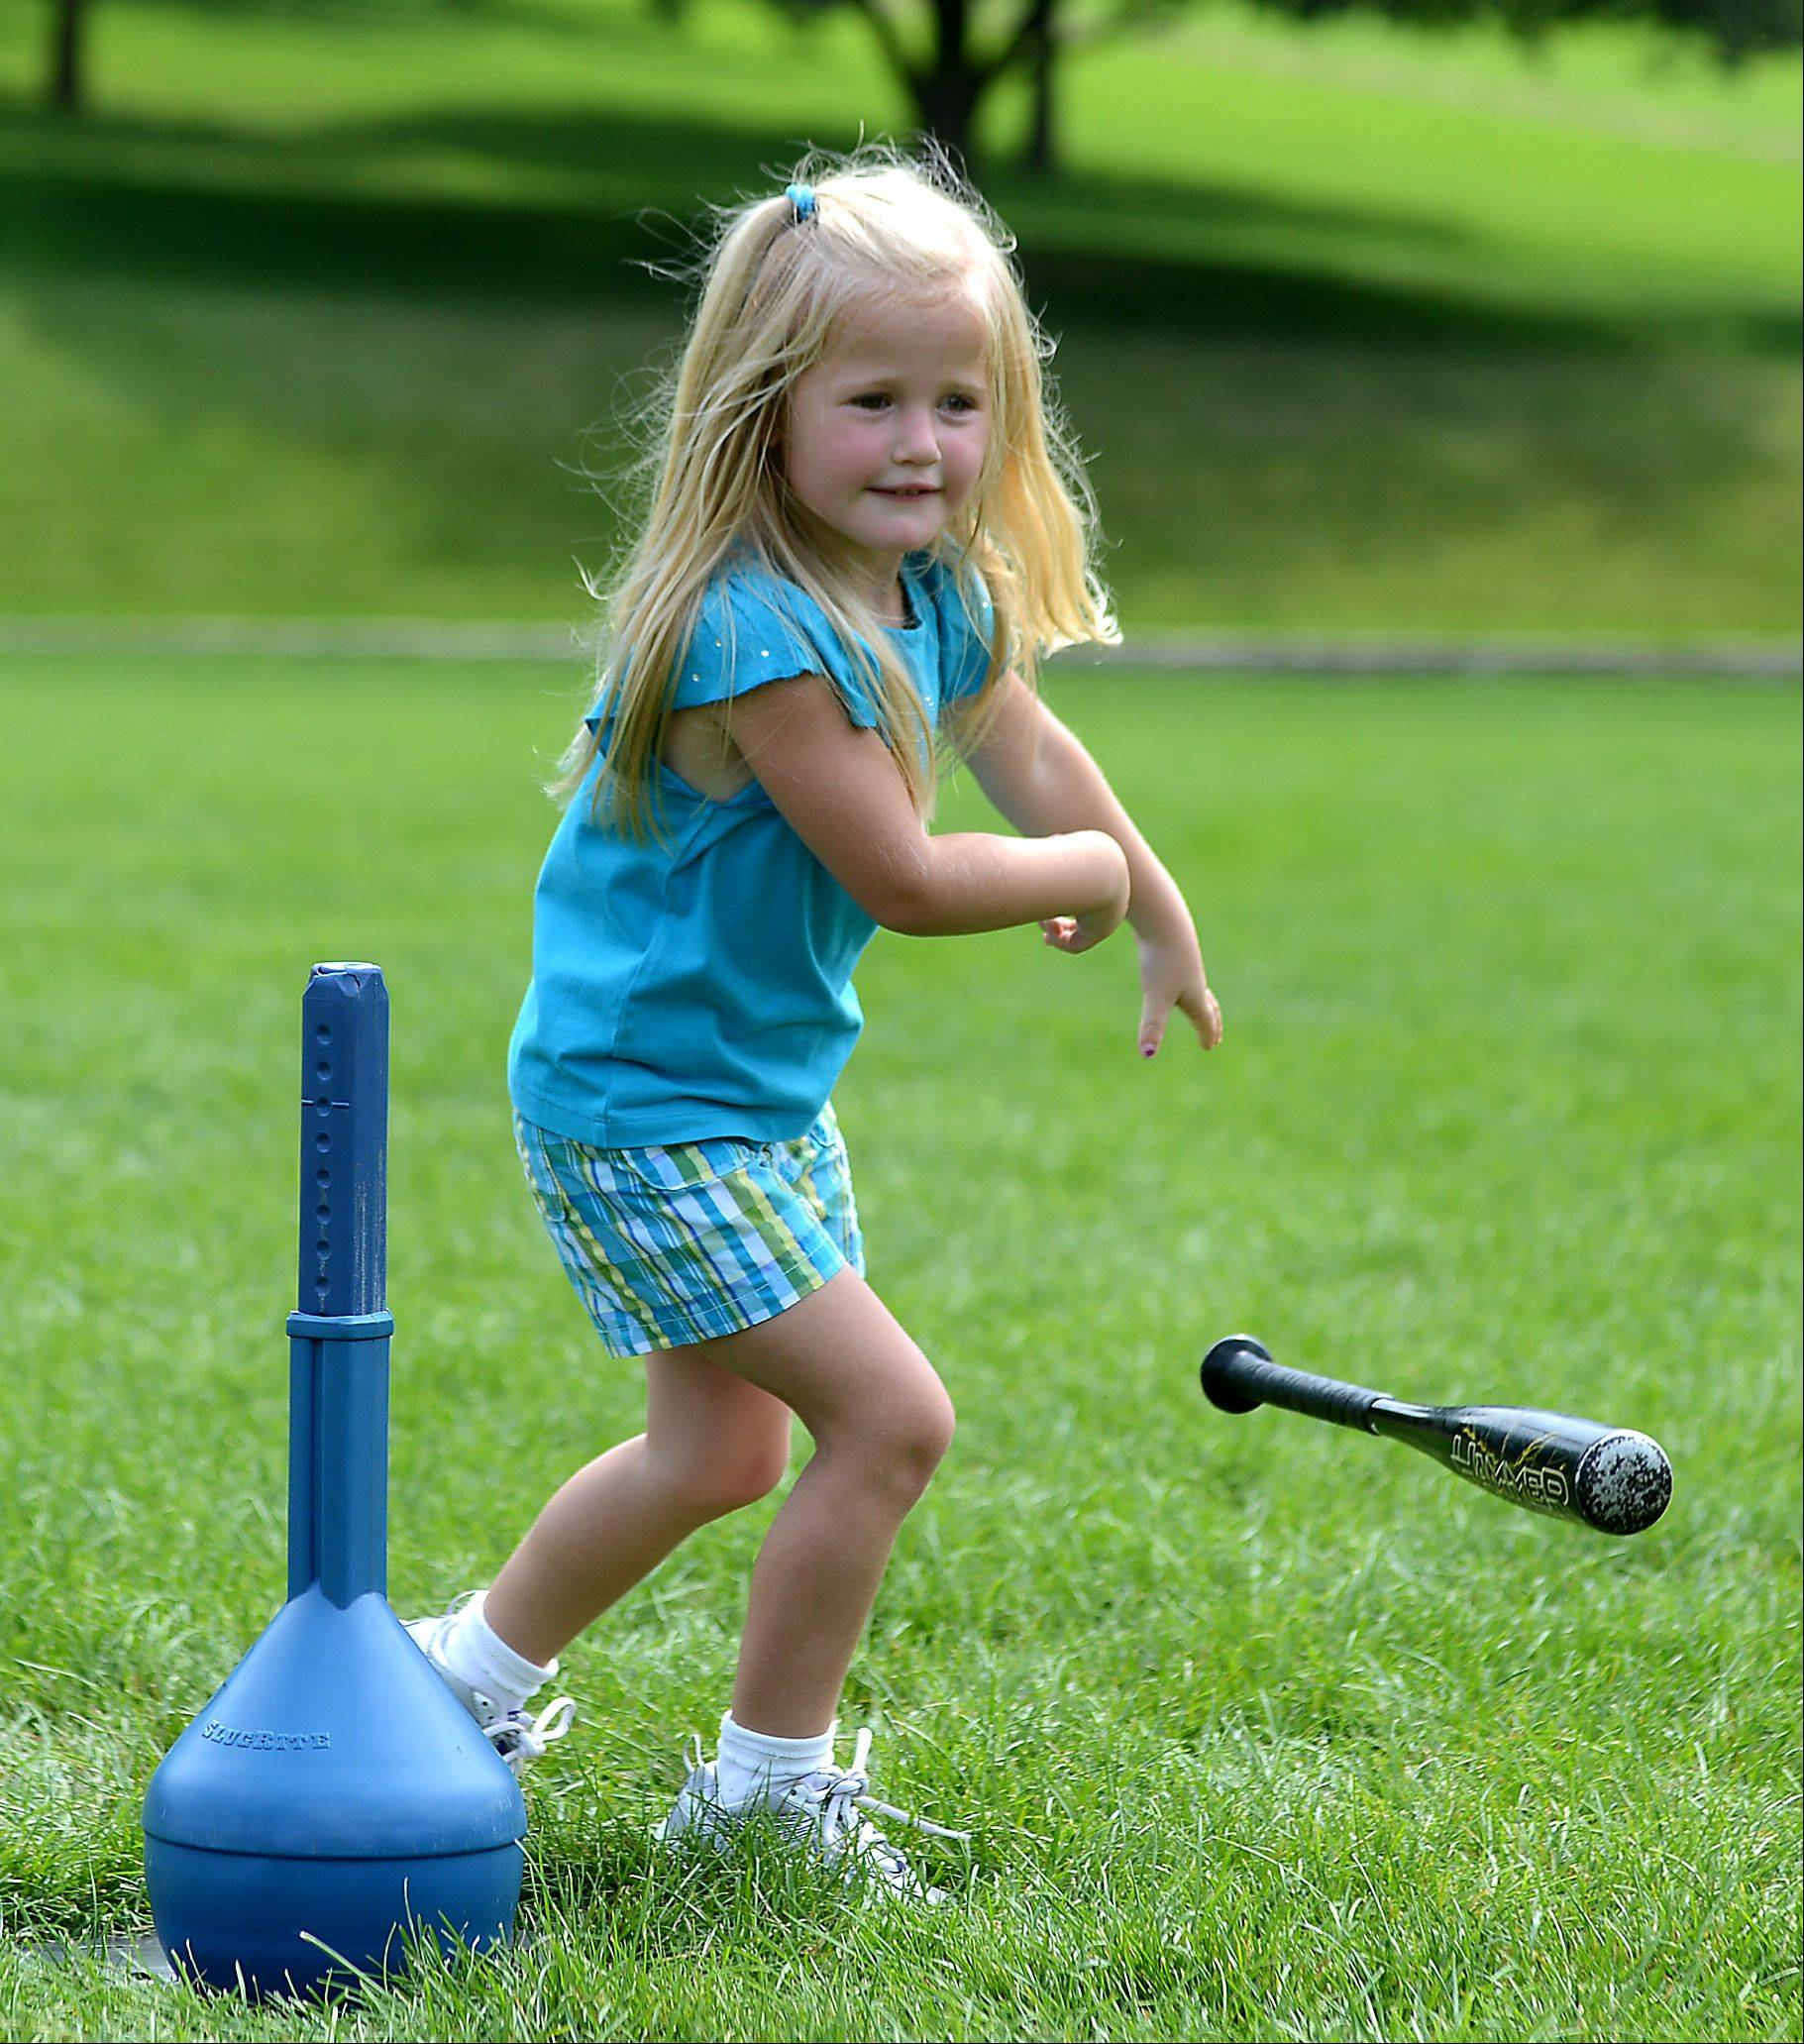 Alexa Elmer, 4, of South Elgin, drops the bat and takes off running for first base after getting a hit during an All Star Sports Camps T-Ball camp at Pottawatomie Park in St. Charles Wednesday.